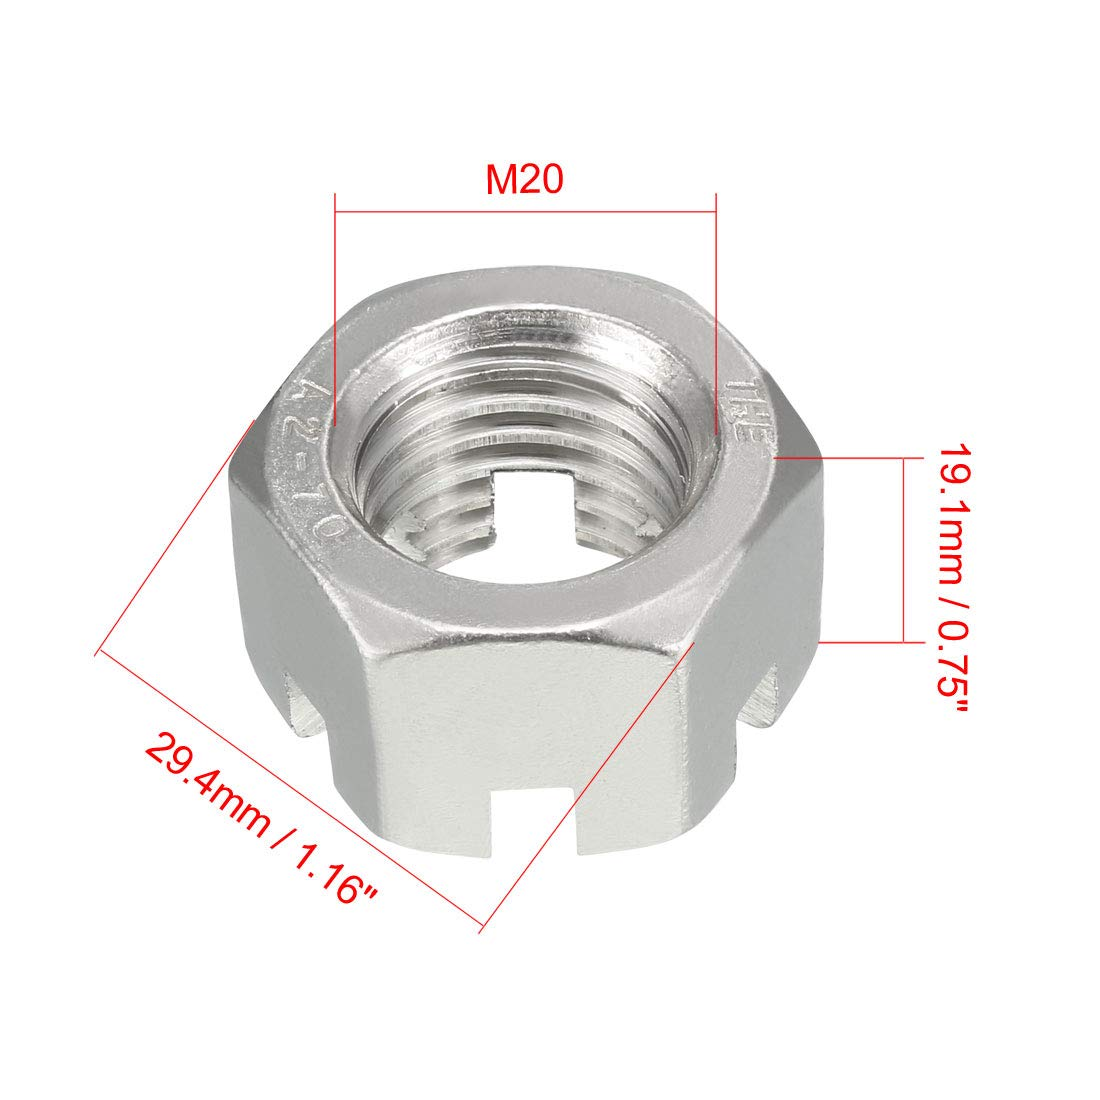 uxcell M10 x 1.5mm Pitch 304 Stainless Steel Slotted Hex Nuts Pack of 10